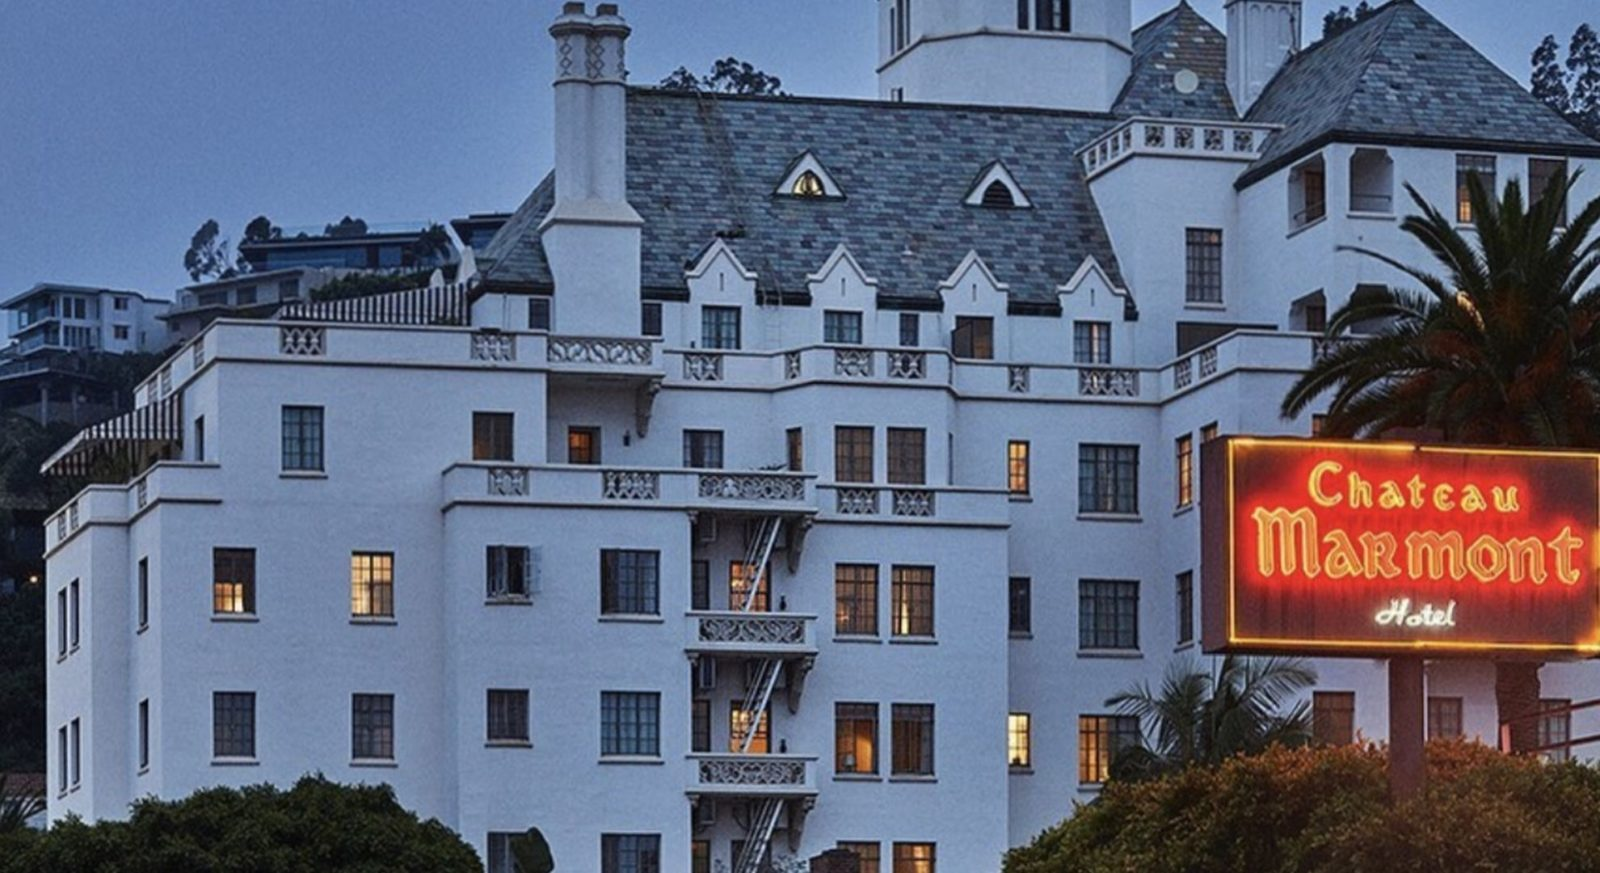 Hollywood's favourite Chateau Marmont is now a members-only hotel